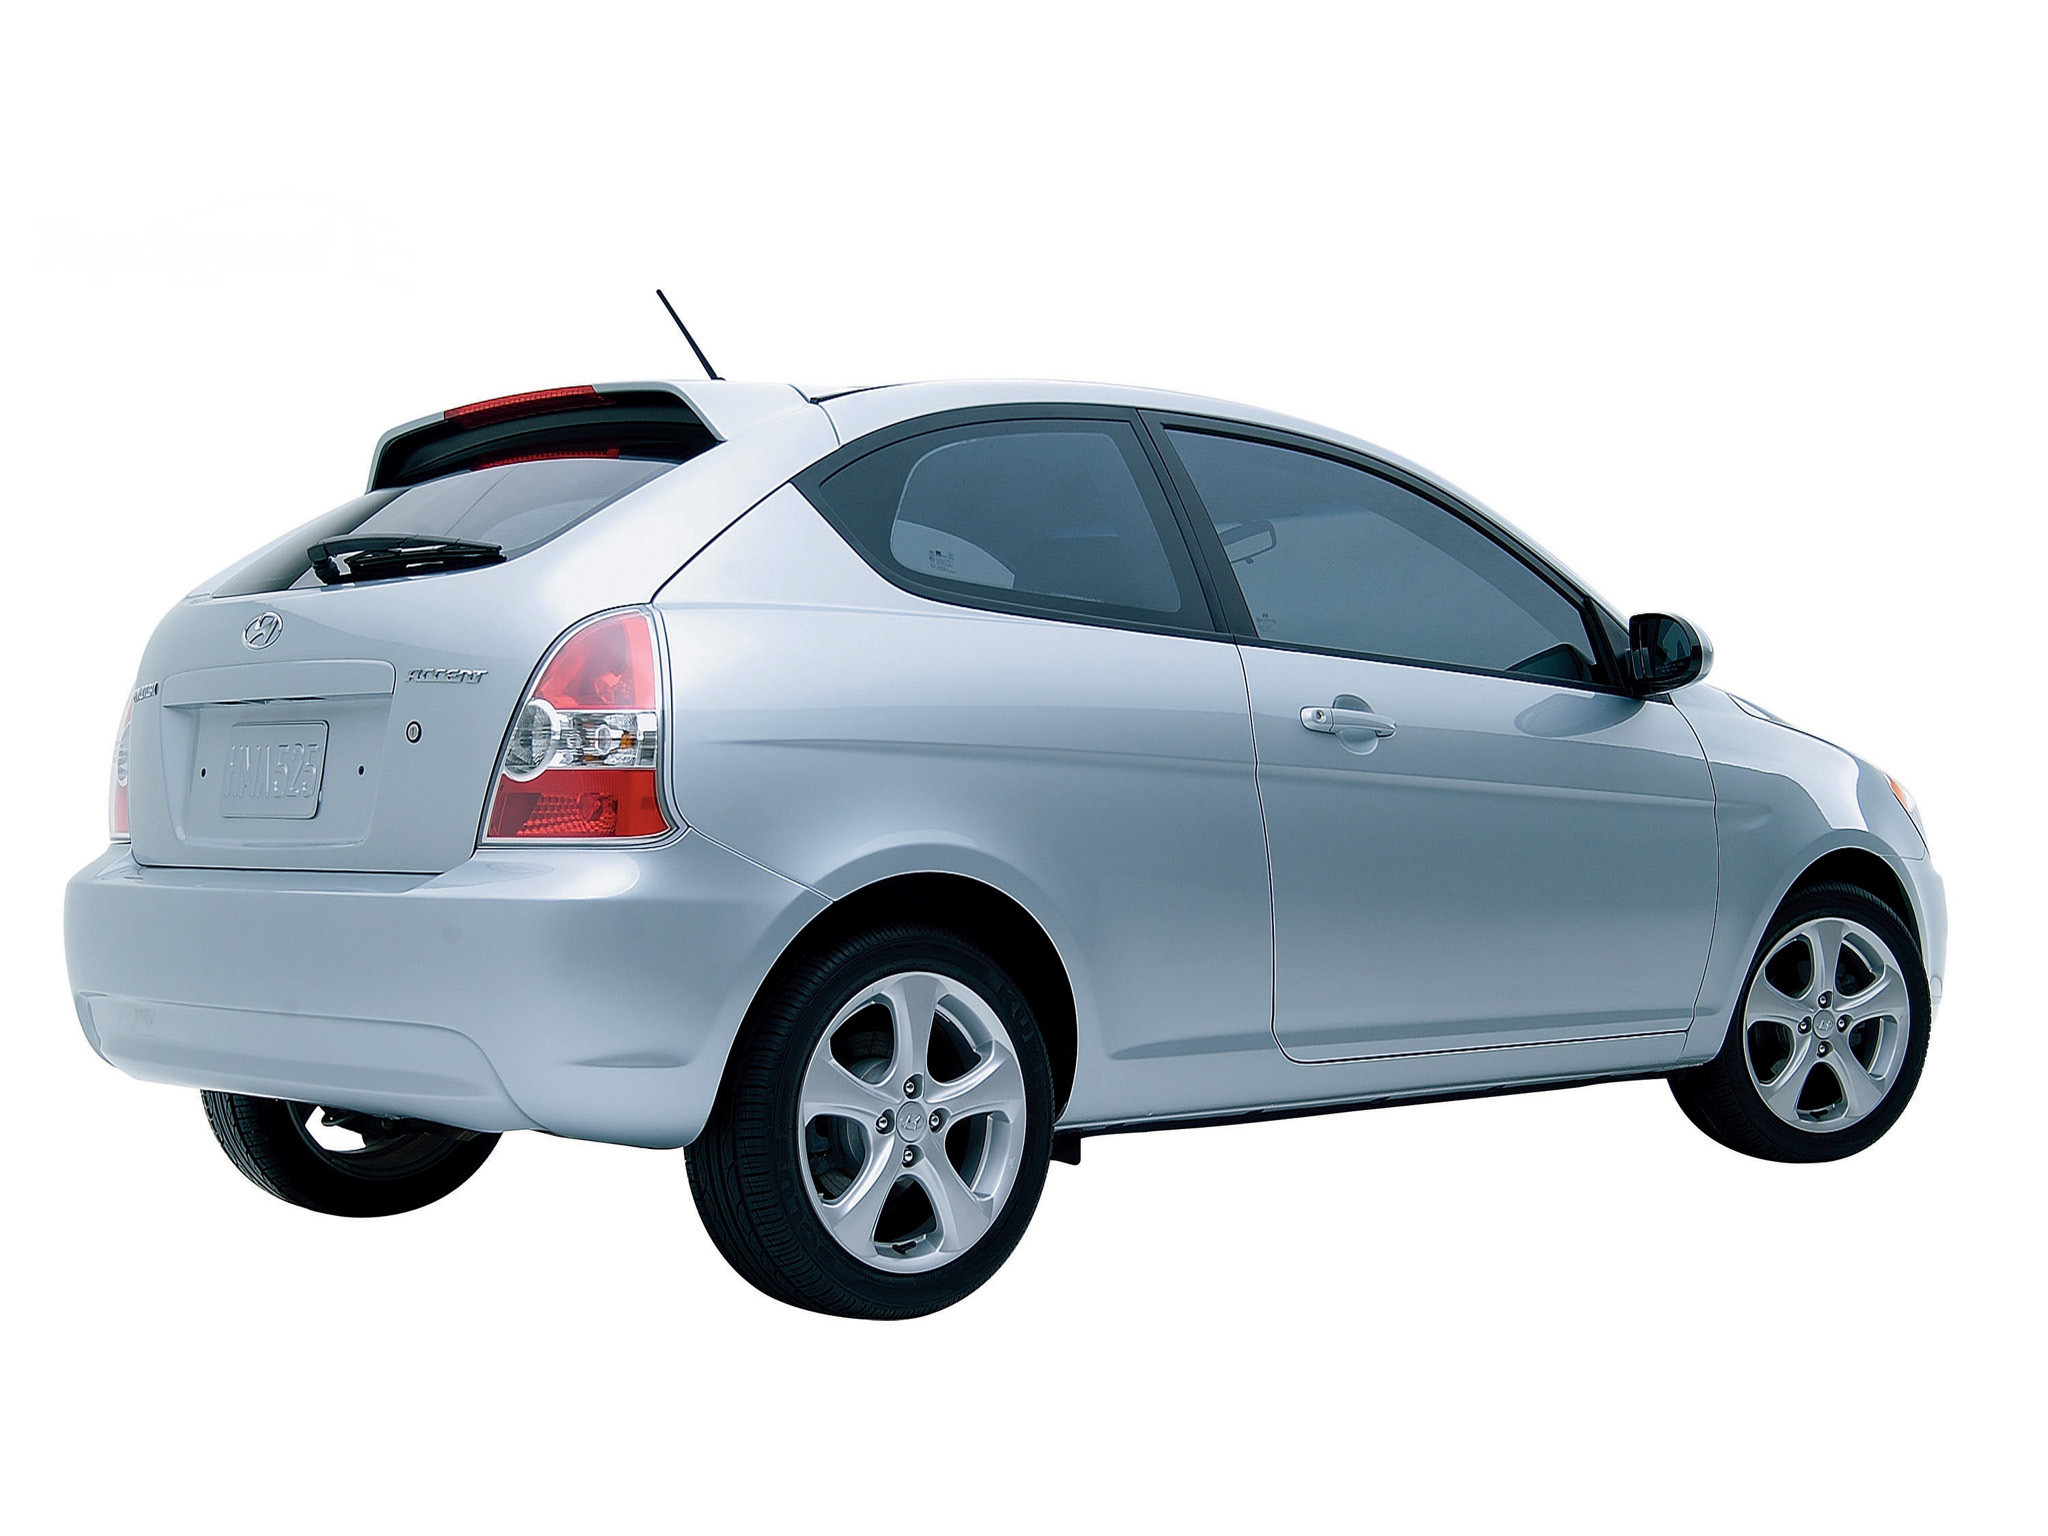 hyundai accent 2007 hyundai accent 2007 photo 04 car in. Black Bedroom Furniture Sets. Home Design Ideas